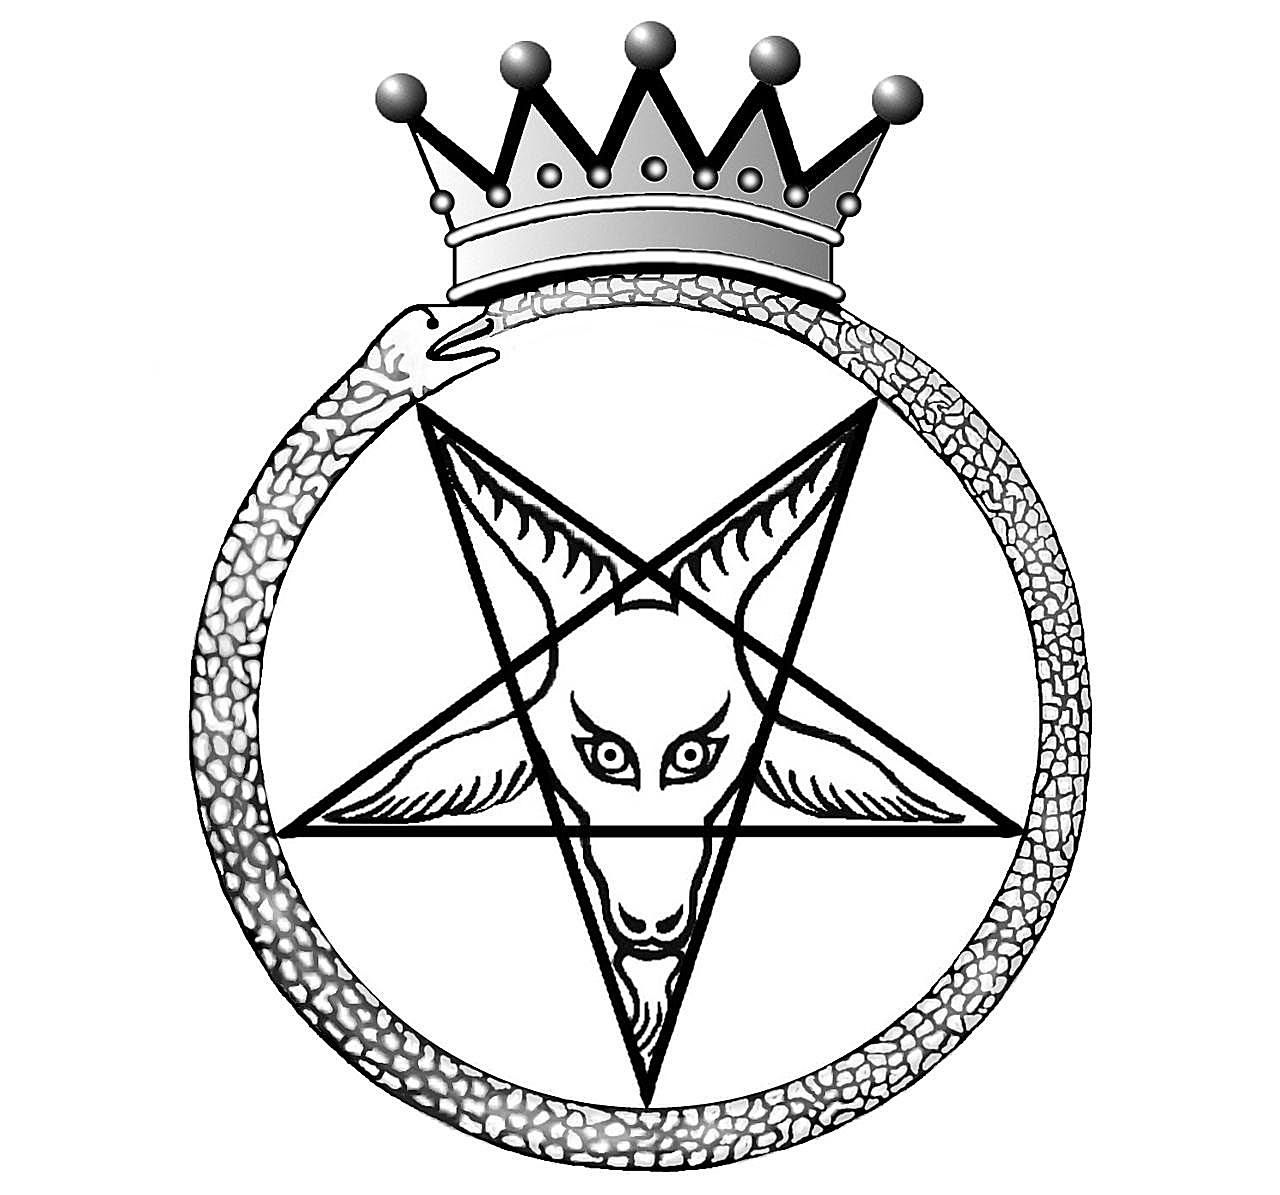 The satanic crown princes of hell buycottarizona